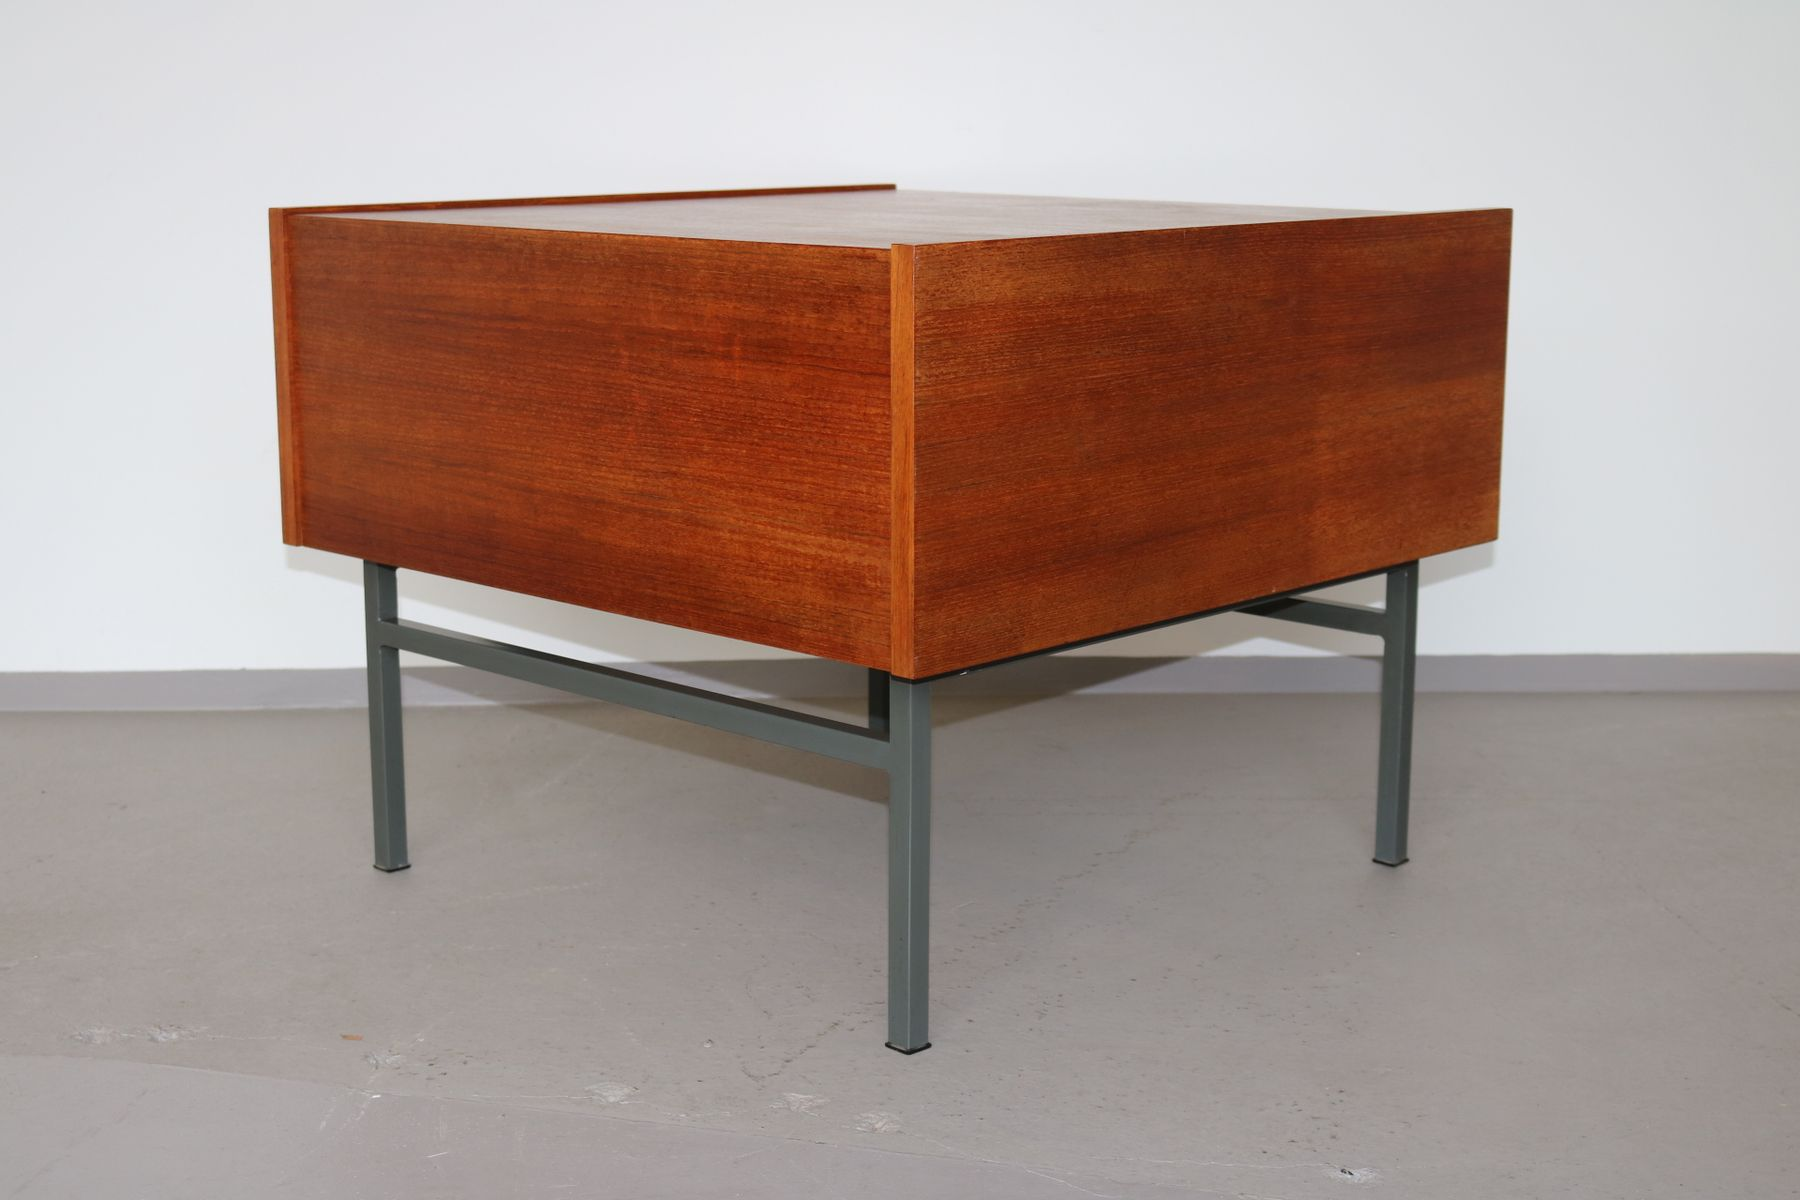 vintage teak folding coffee table, 1960s for sale at pamono